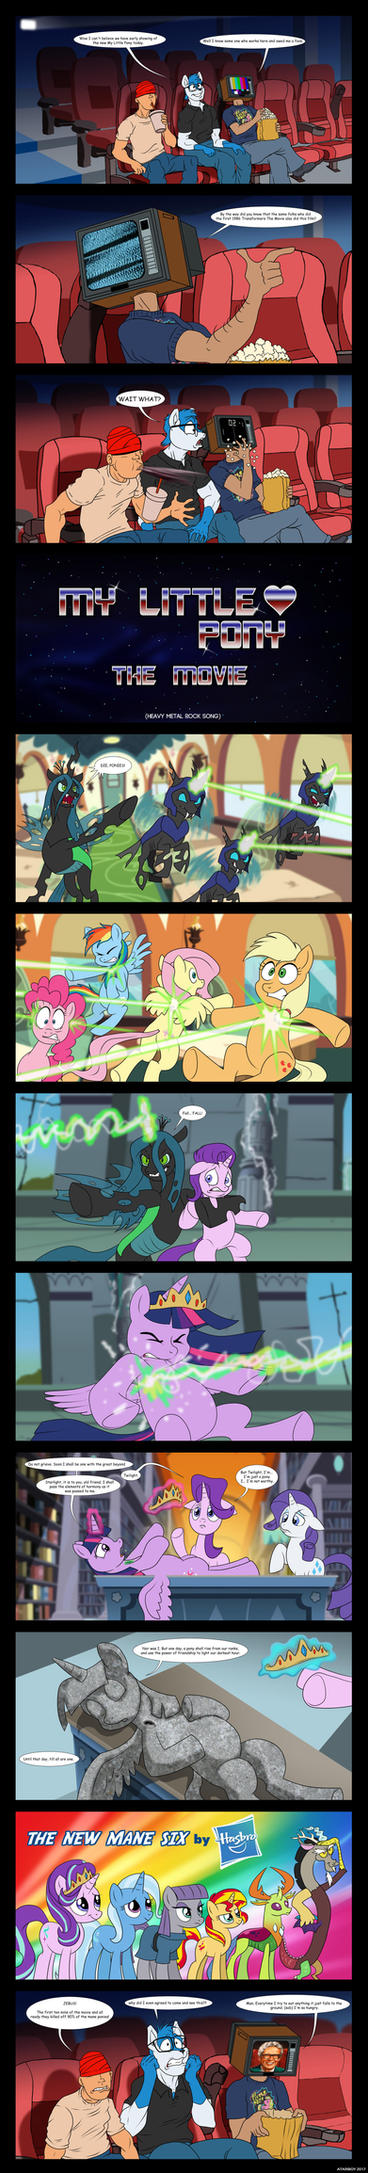 My Little Pony The Movie - HASBRO EDITION. by Atariboy2600